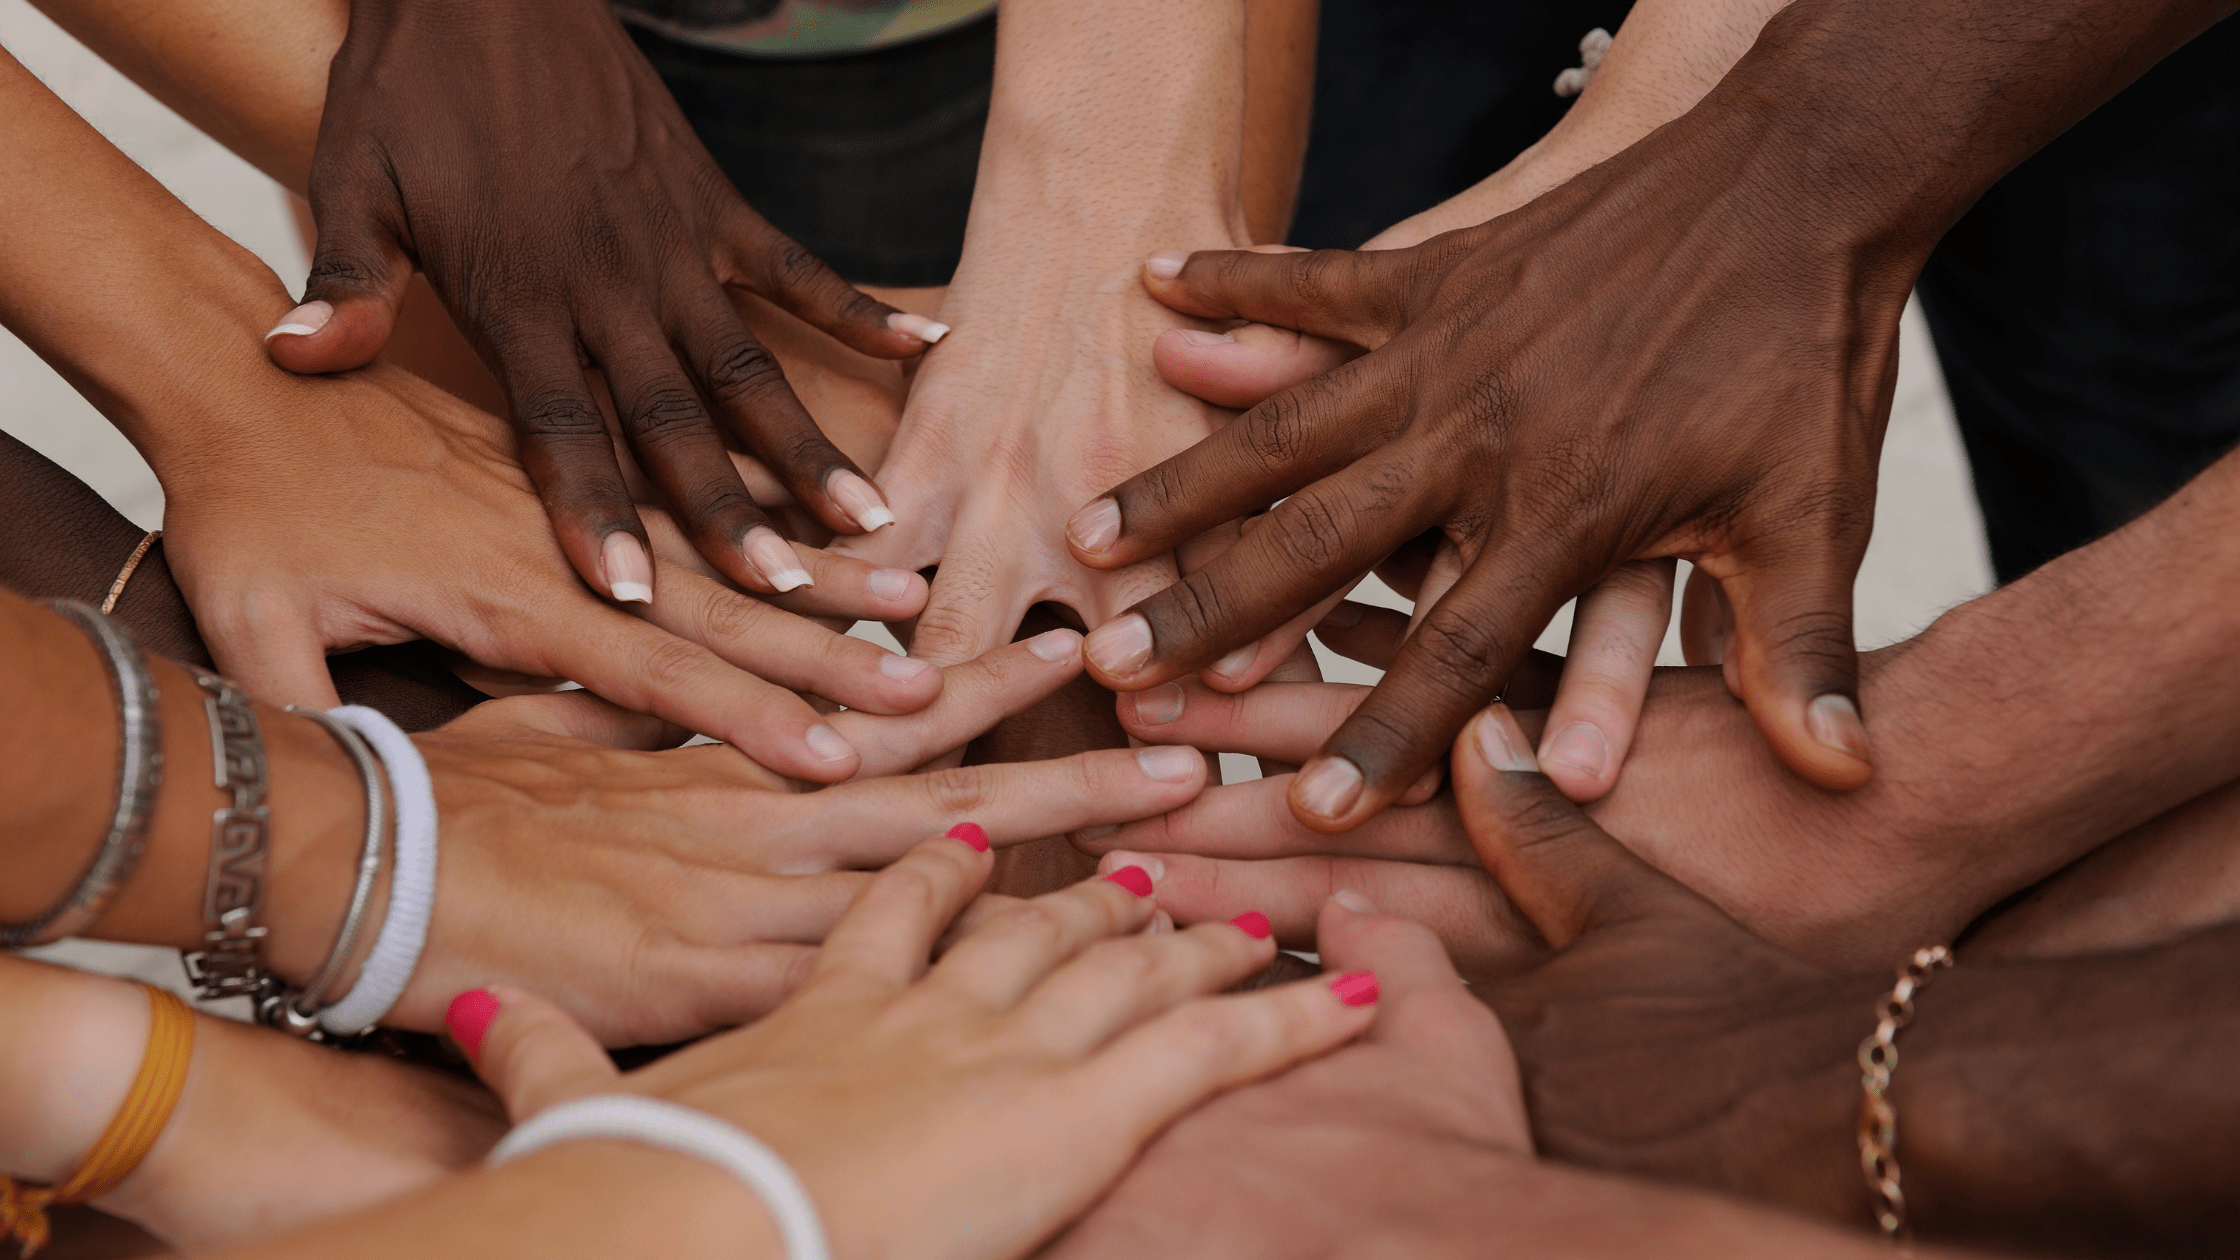 4 Recommendations to Impact Racial Inequities in Our Industry